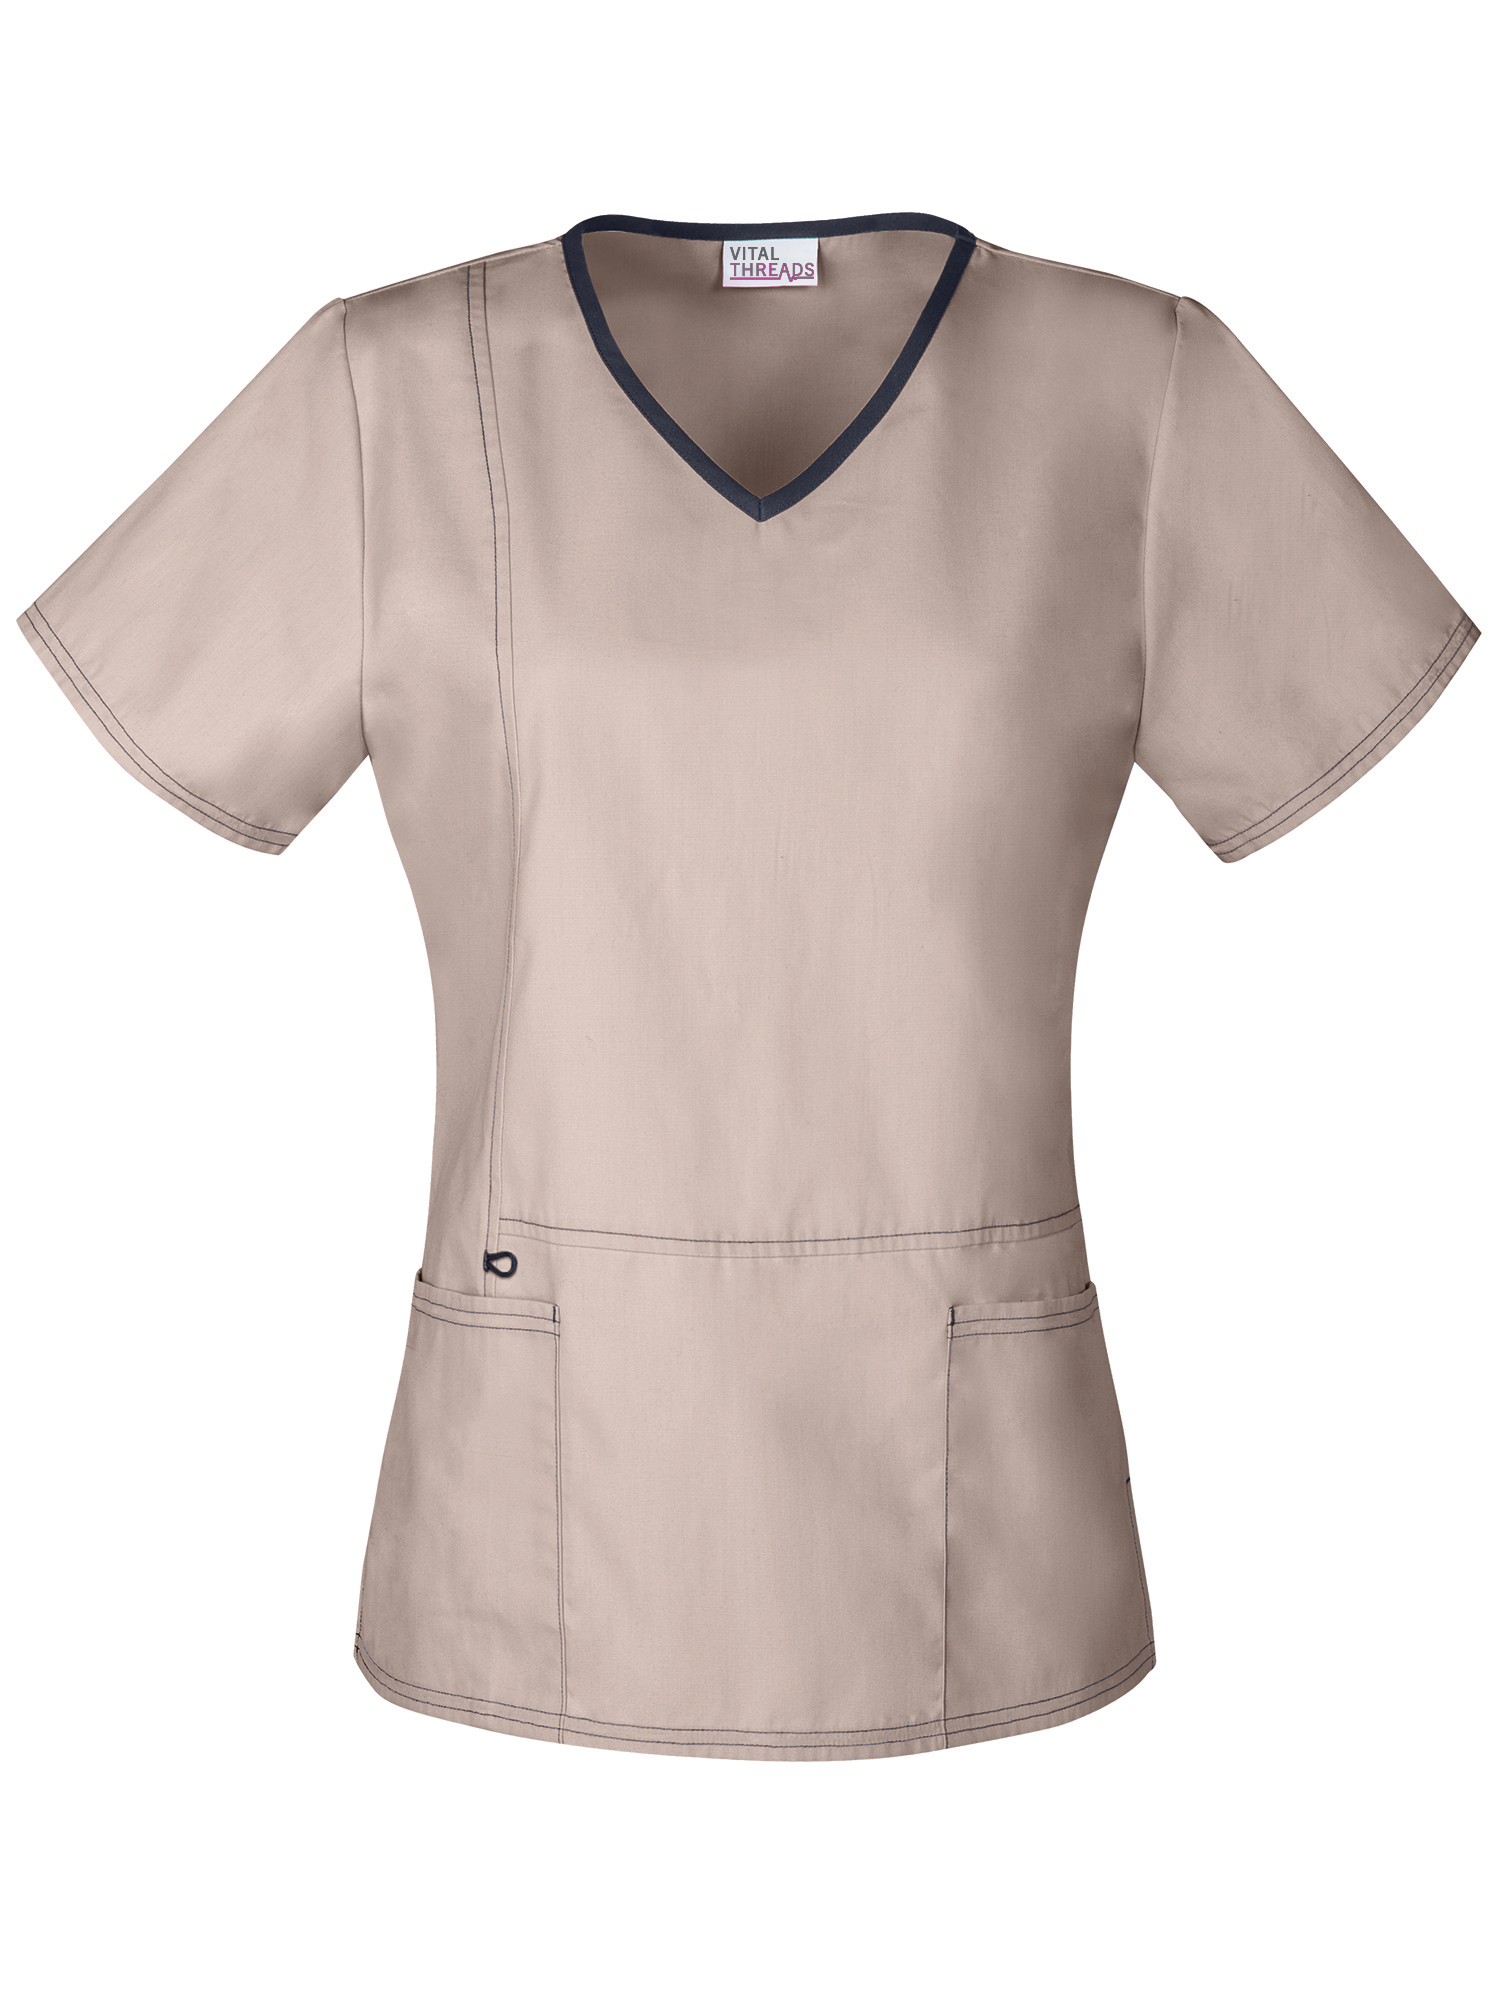 Women's V-Neck Scrub Top with Front Fashion Seam Detail